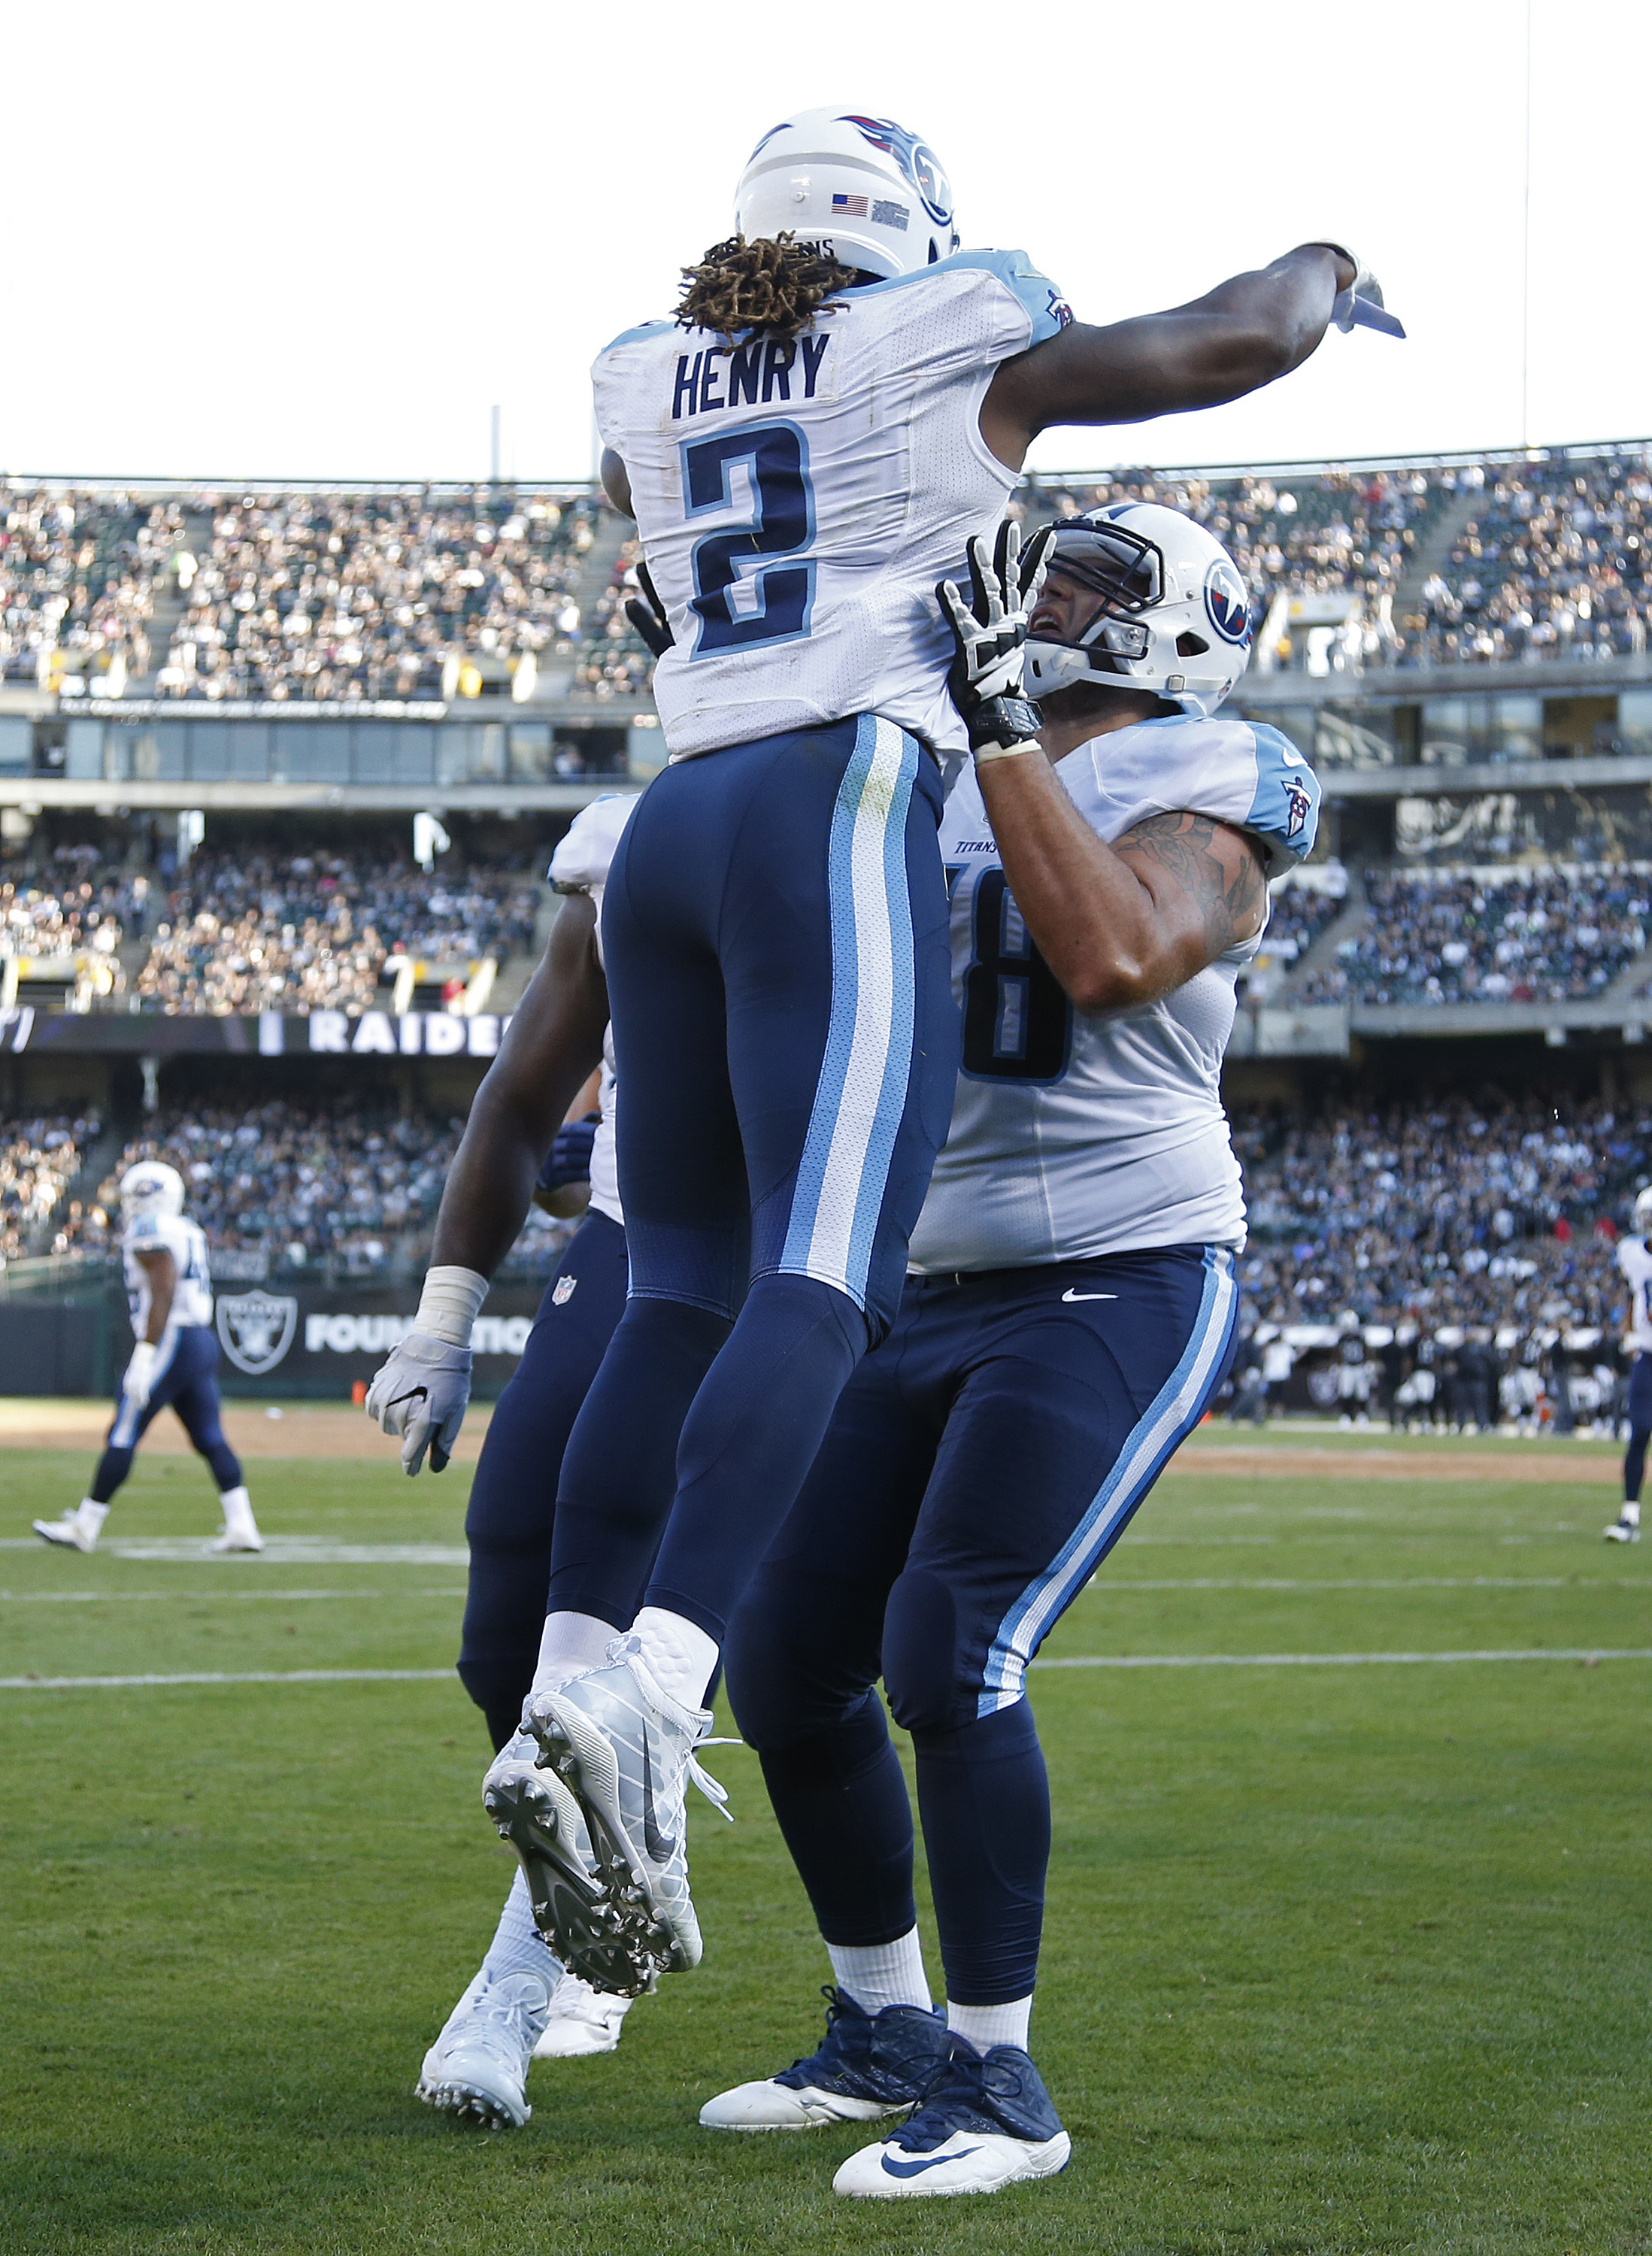 Tennessee Titans running back Derrick Henry, left, is greeted by teammate Jack Conklin, right, after scoring a touchdown during the first half of an NFL preseason football game against the Oakland Raiders Saturday, Aug. 27, 2016, in Oakland, Calif. (AP Ph